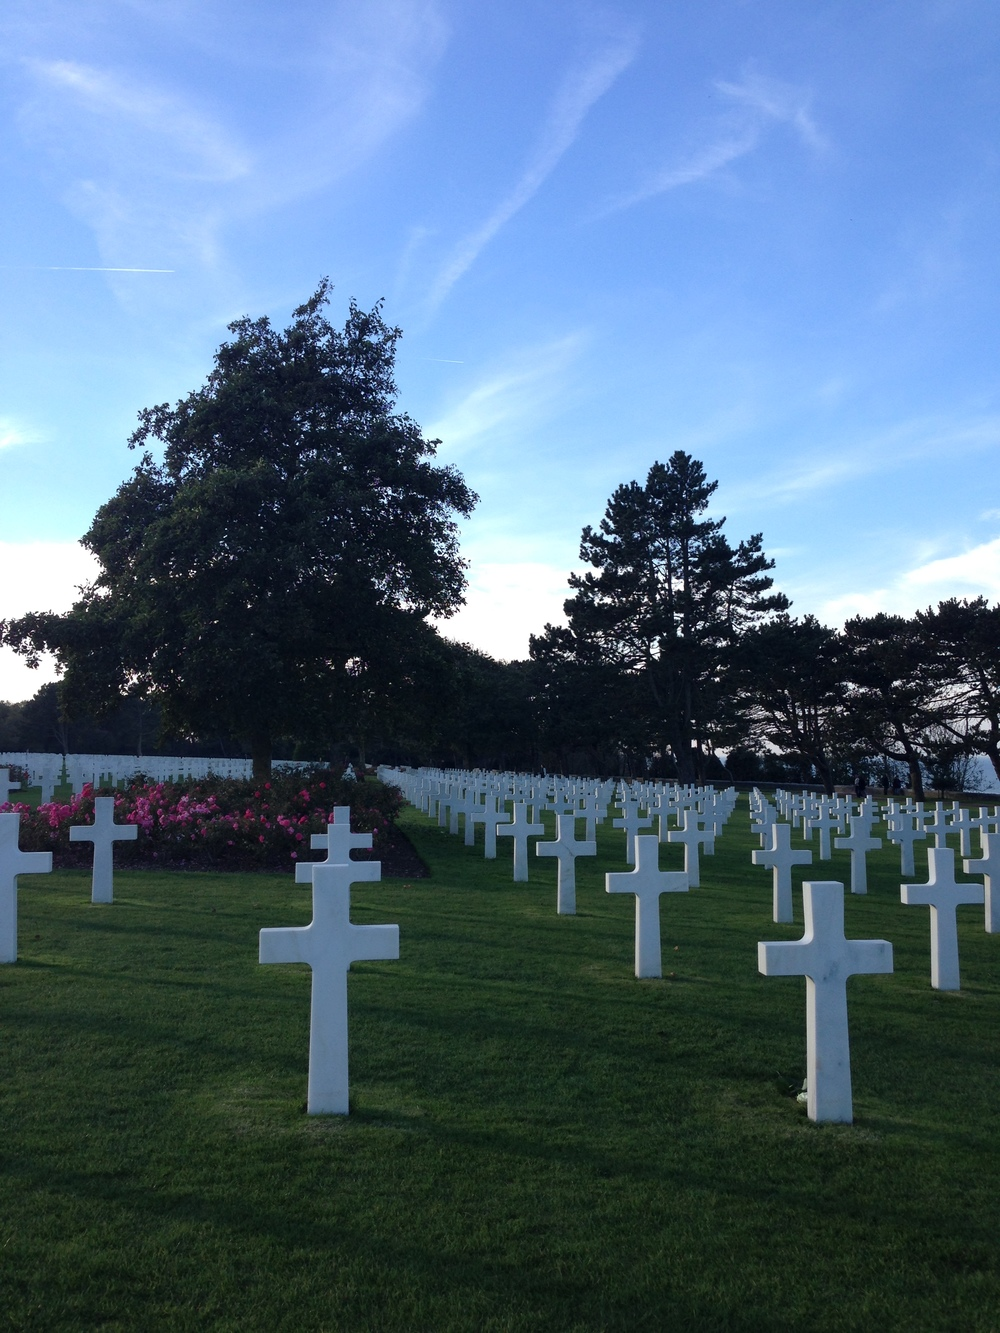 More than 9,000 Americans are buried here. The land, in fact, is a gift from the French government to the United States. Thus, when you walk here, you are on American land.